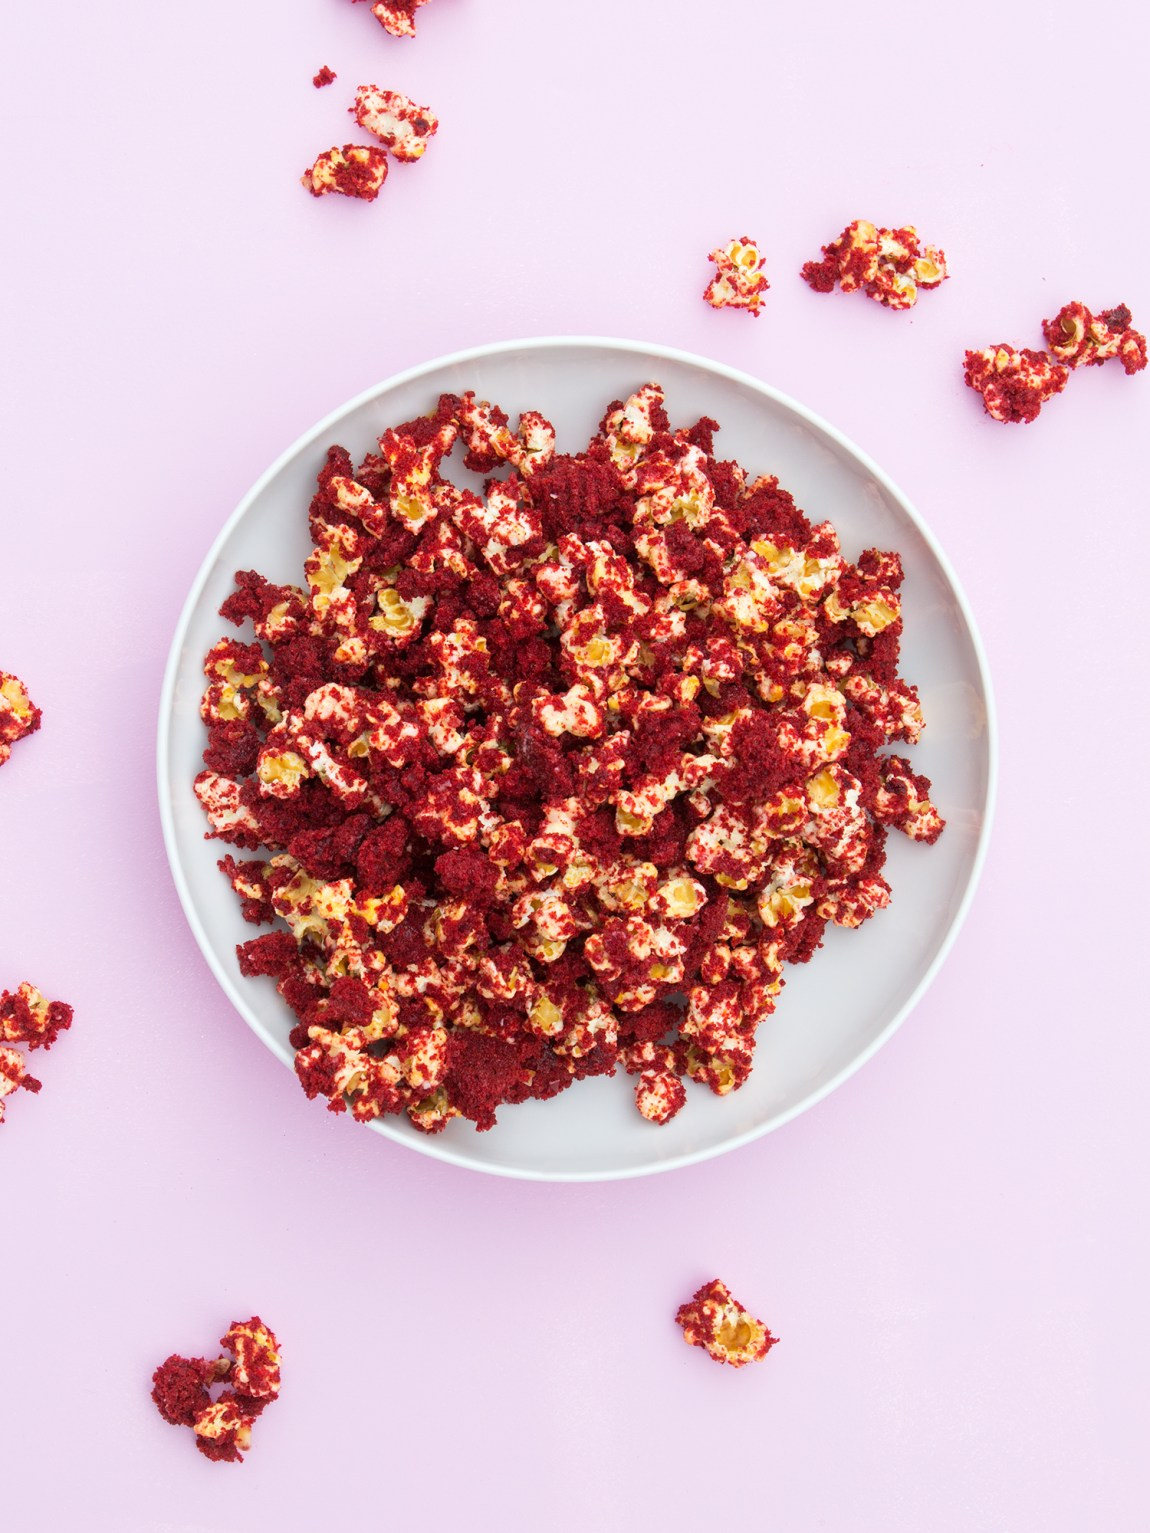 If you love red velvet cupcakes then you're going to love this this salty sweet take on them! This red velvet popcorn is just so good!